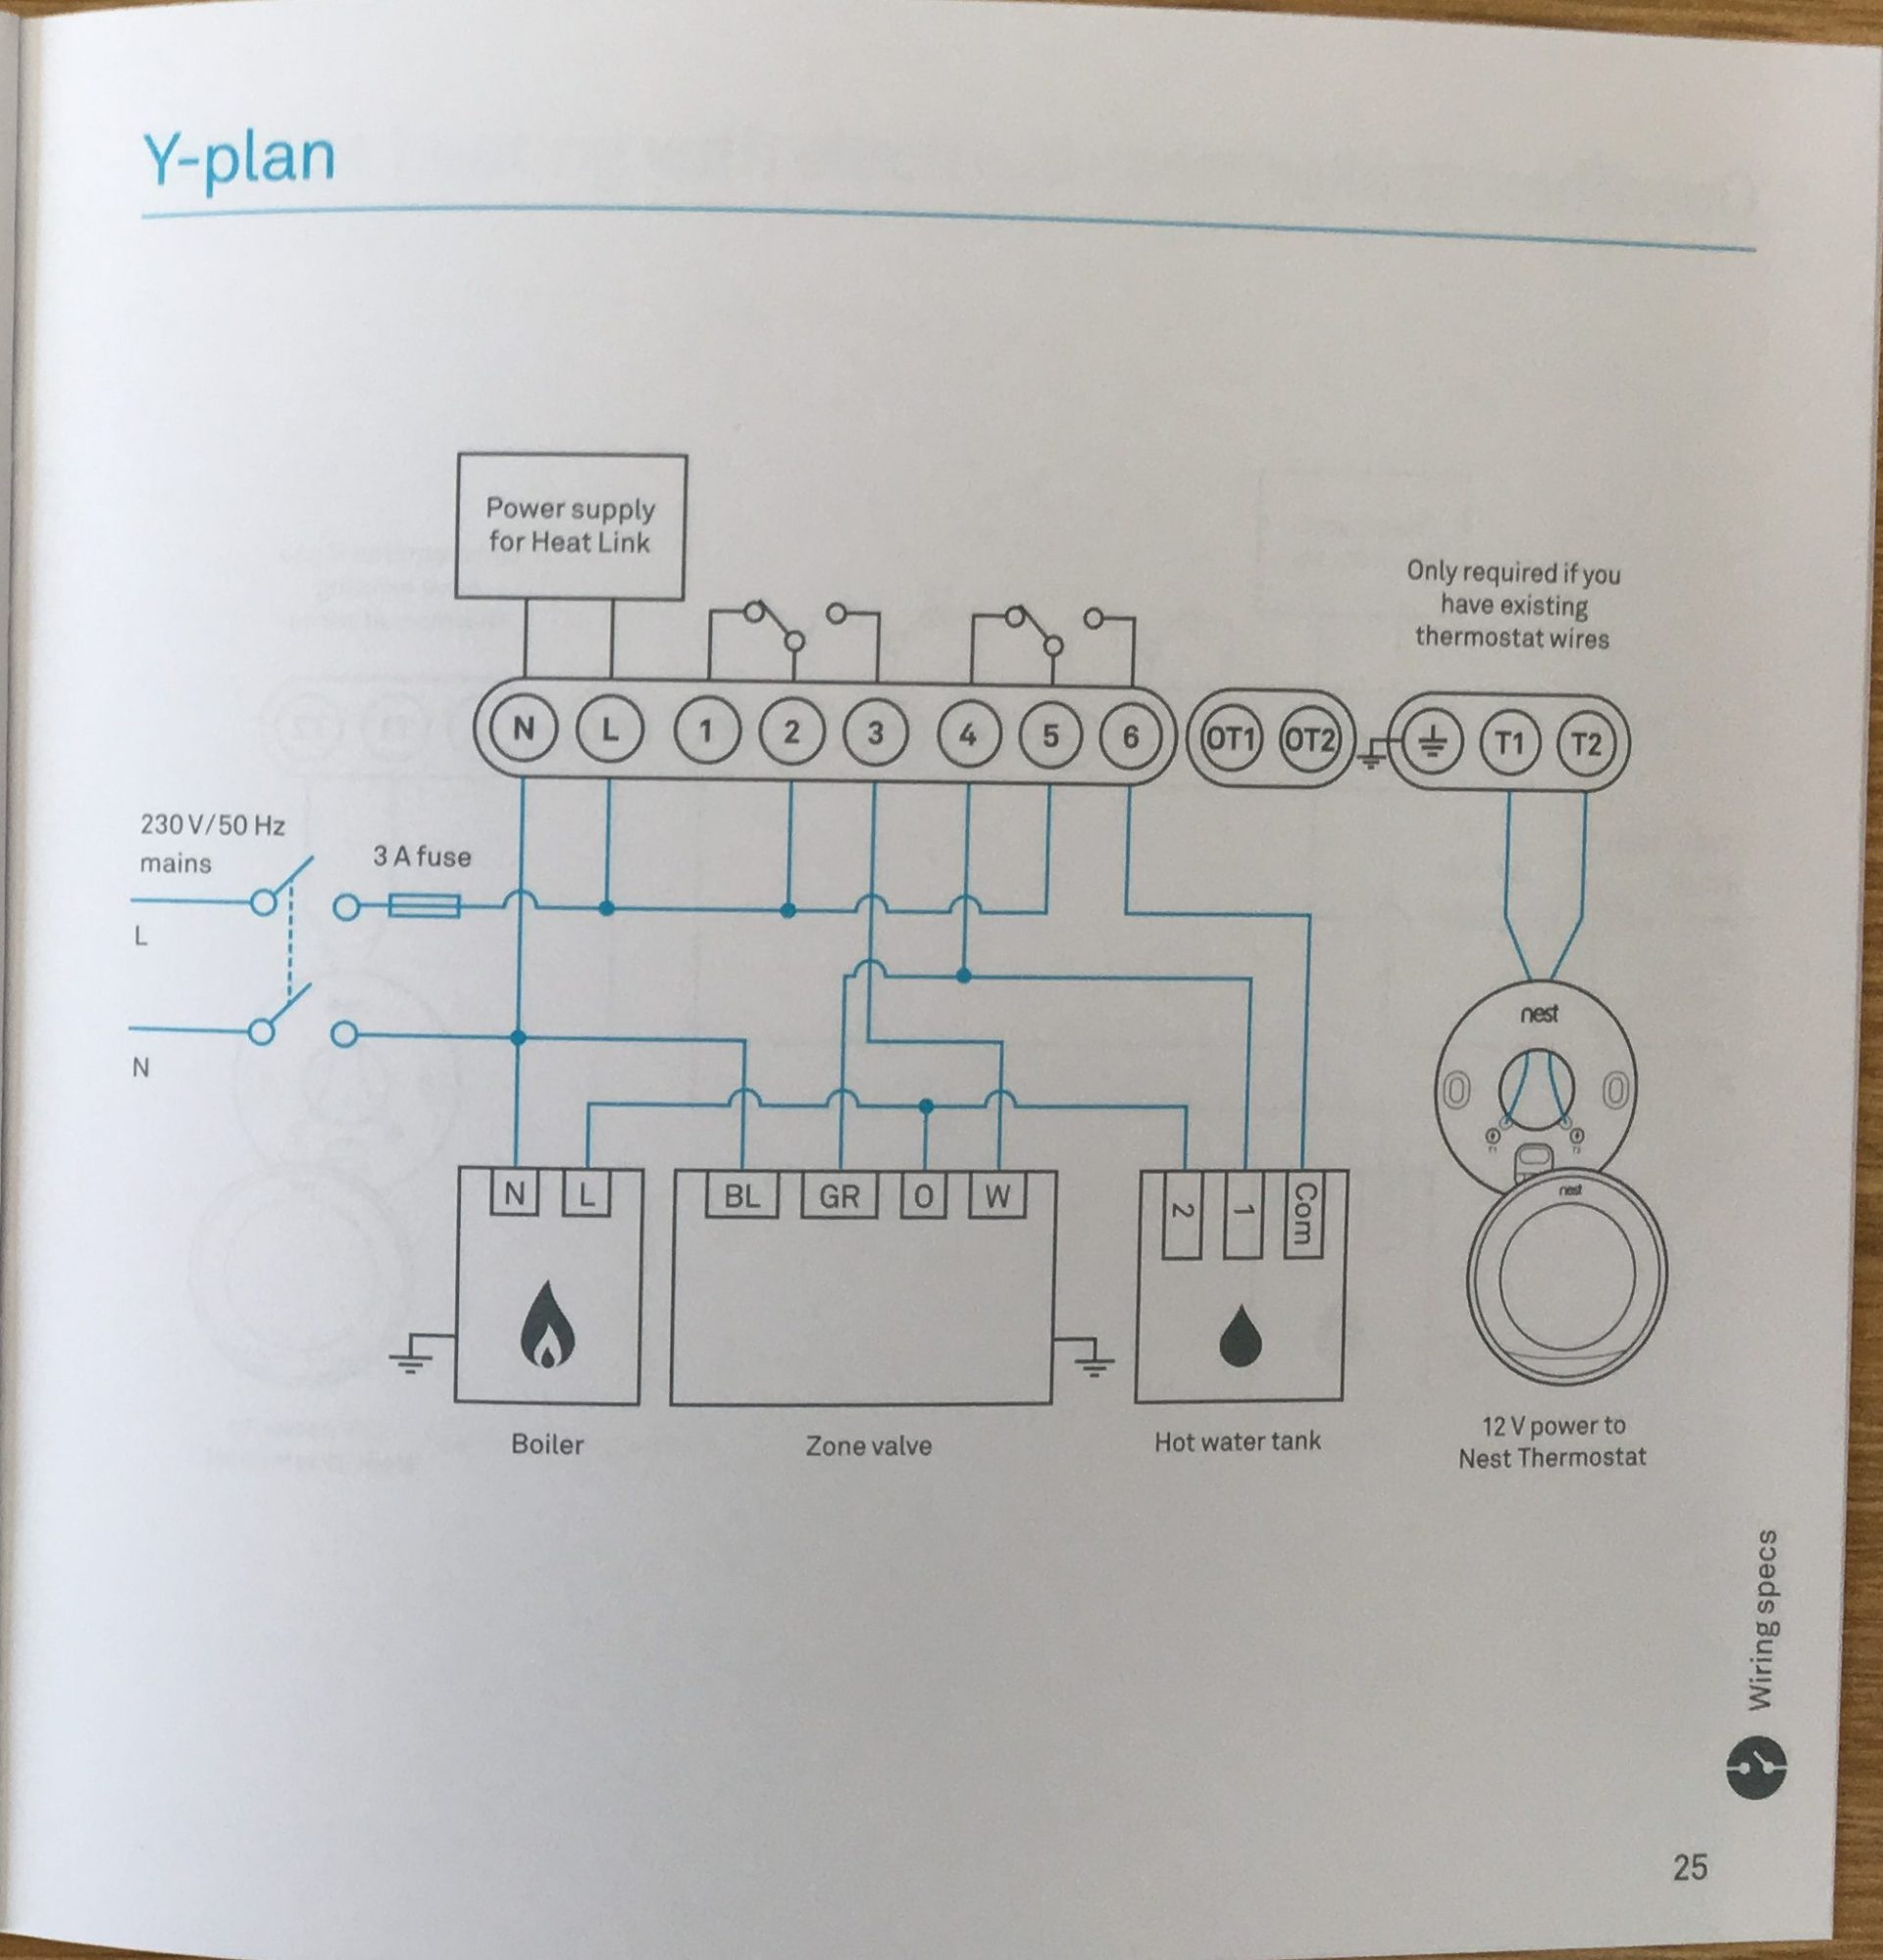 How To Install The Nest Learning Thermostat (3Rd Gen) In A Y-Plan - Wiring Diagram For Nest 2 Zone